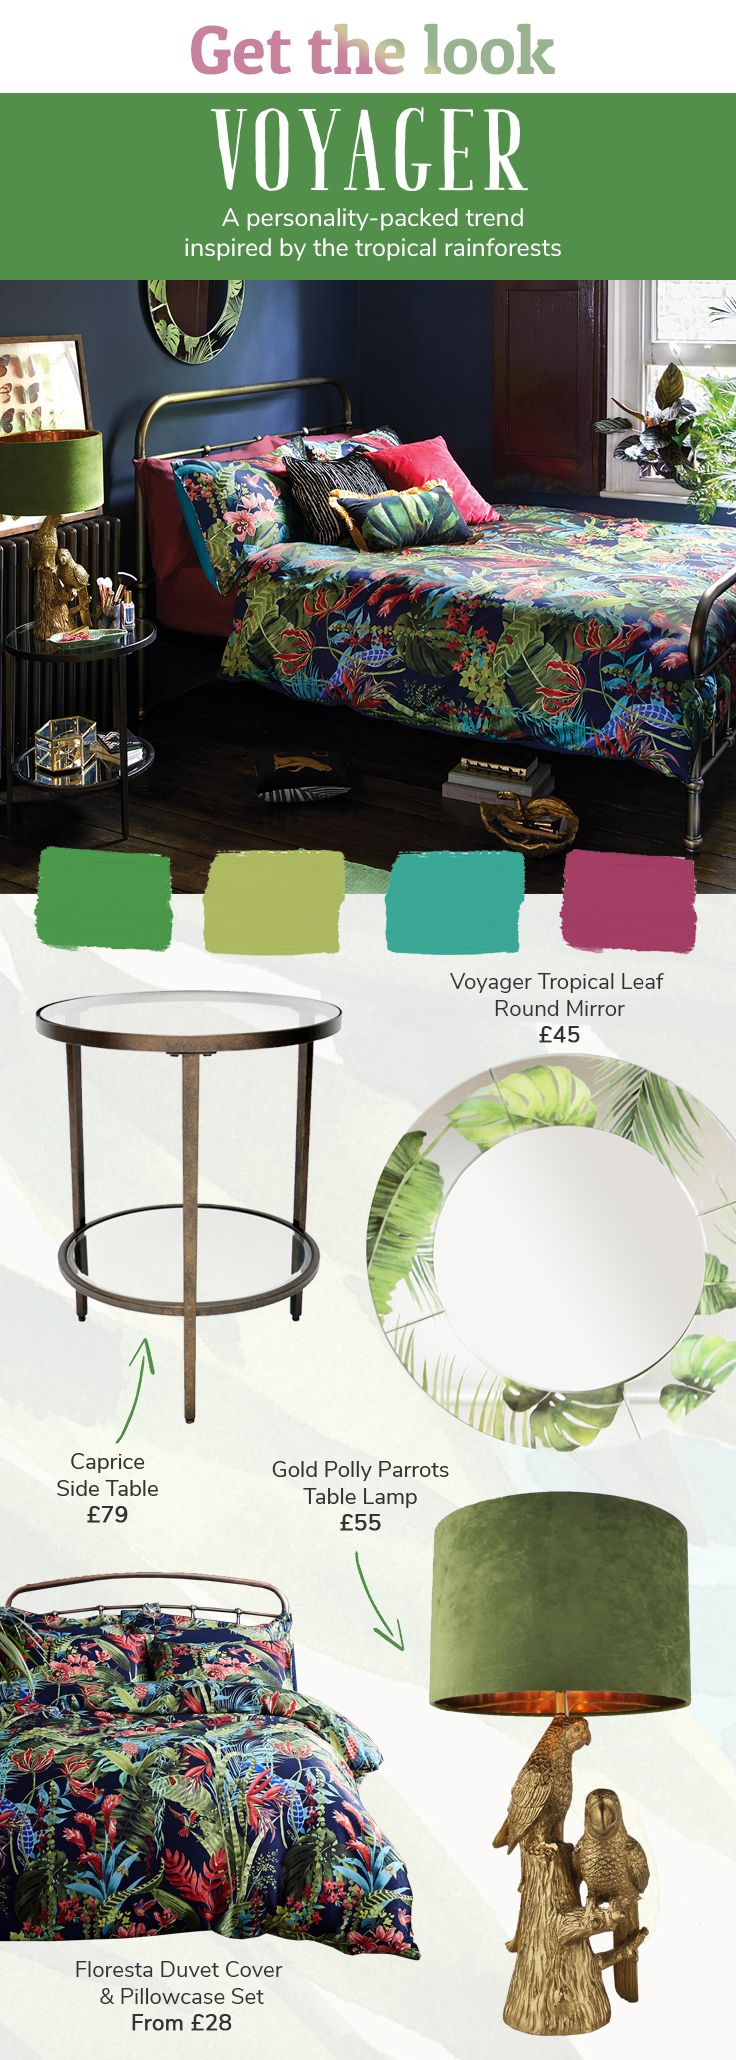 GET THE LOOK   Voyager features a vibrant colour palette of green and teal, with highlights of gold with striking pops of colour. Inspired by rainforests, quirky animal motifs are combined with leafy prints and faux foliage